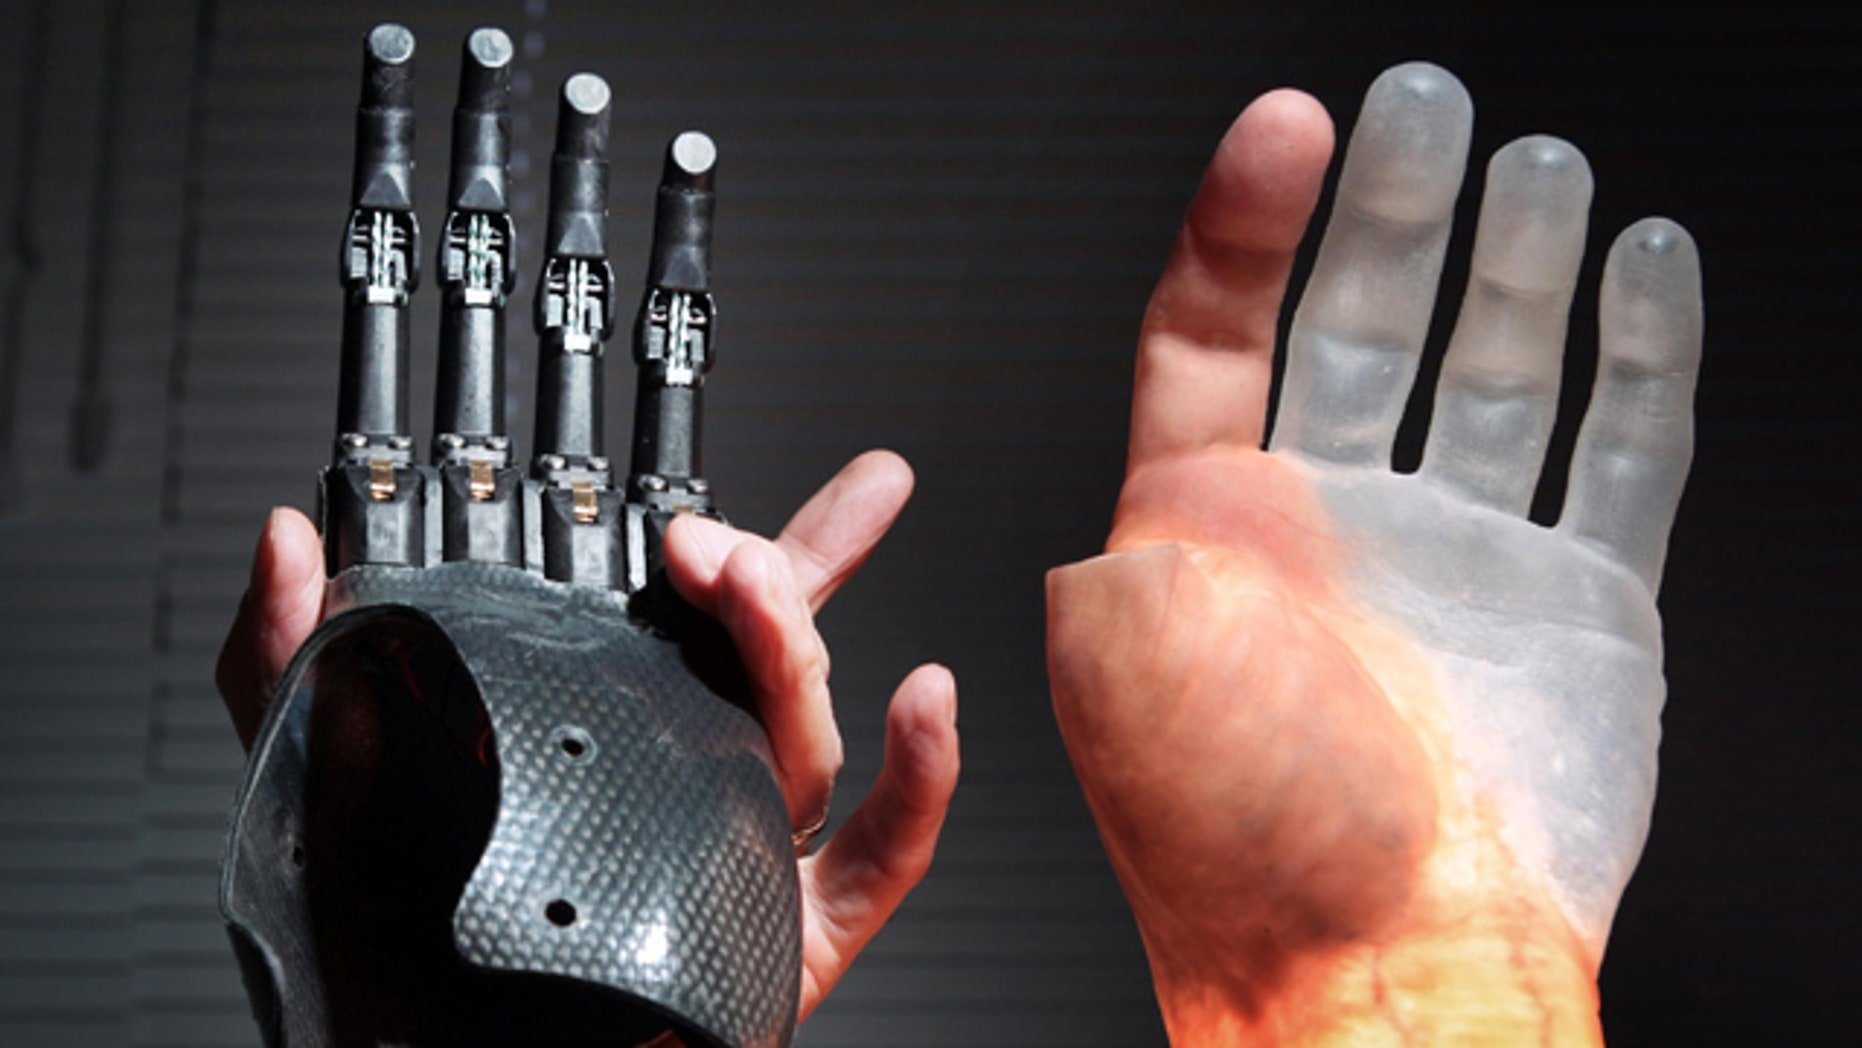 Scientists today unveiled what they claim are the world's first bionic fingers, which they hope will transform the lives of people with missing digits. The new bionic fingers can be seen being demonstrated at Touch Bionics in Livingston near Edinburgh.